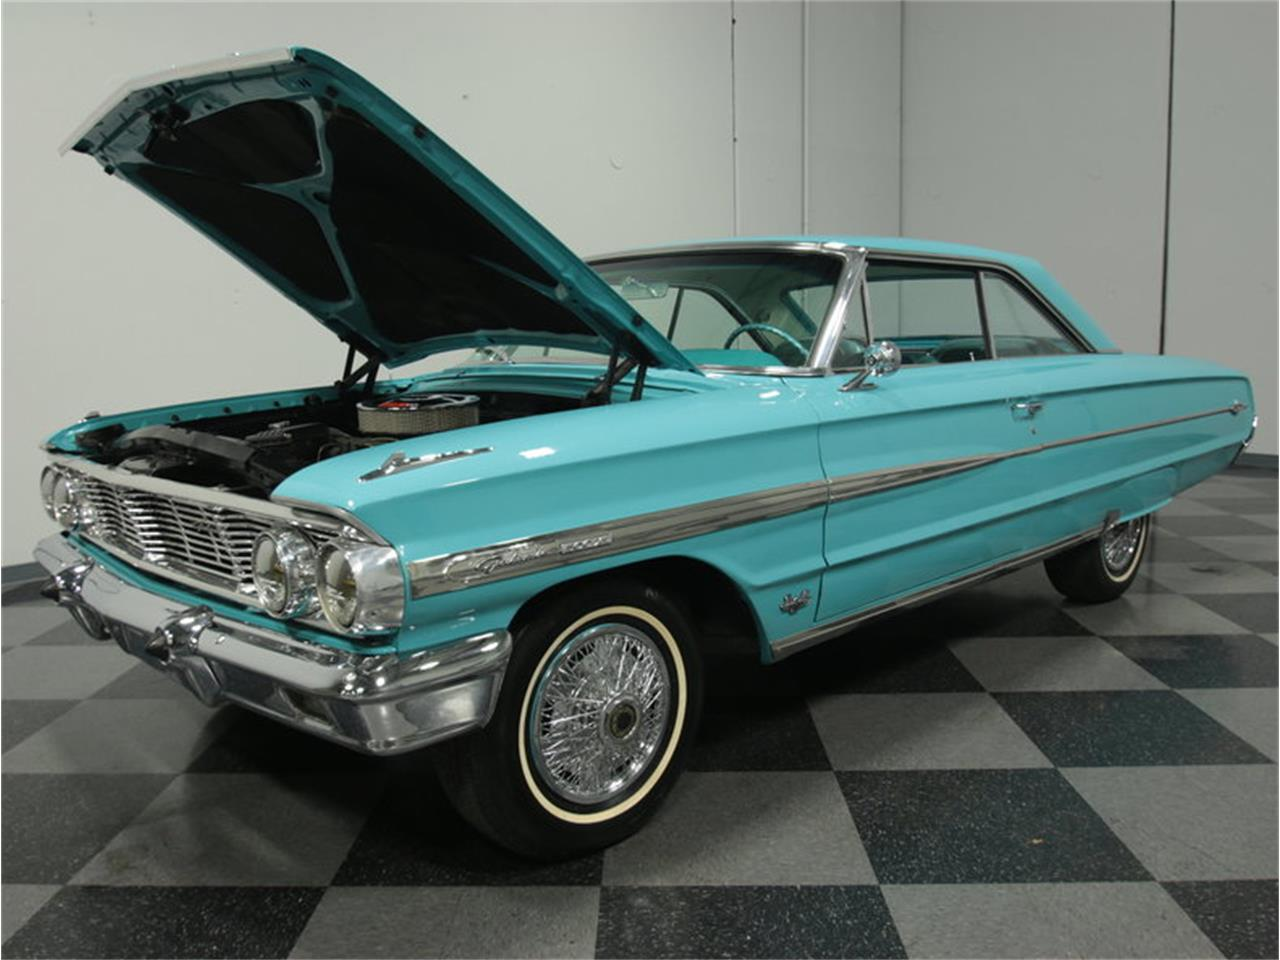 Large Picture of 1964 Ford Galaxie 500 XL located in Lithia Springs Georgia - $27,995.00 - GMV3